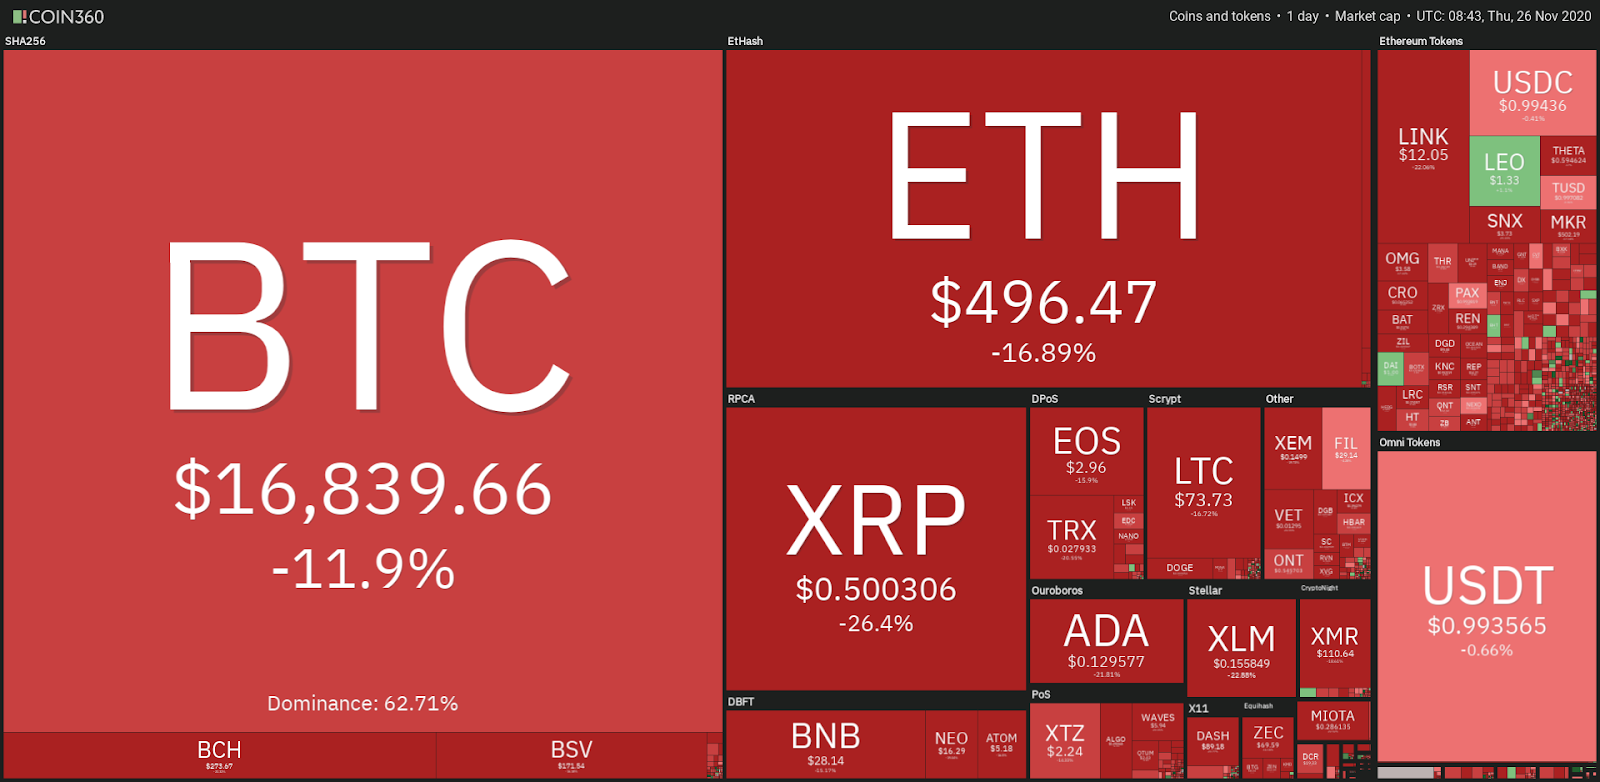 Top cryptocurrency prices in decline - 11/26